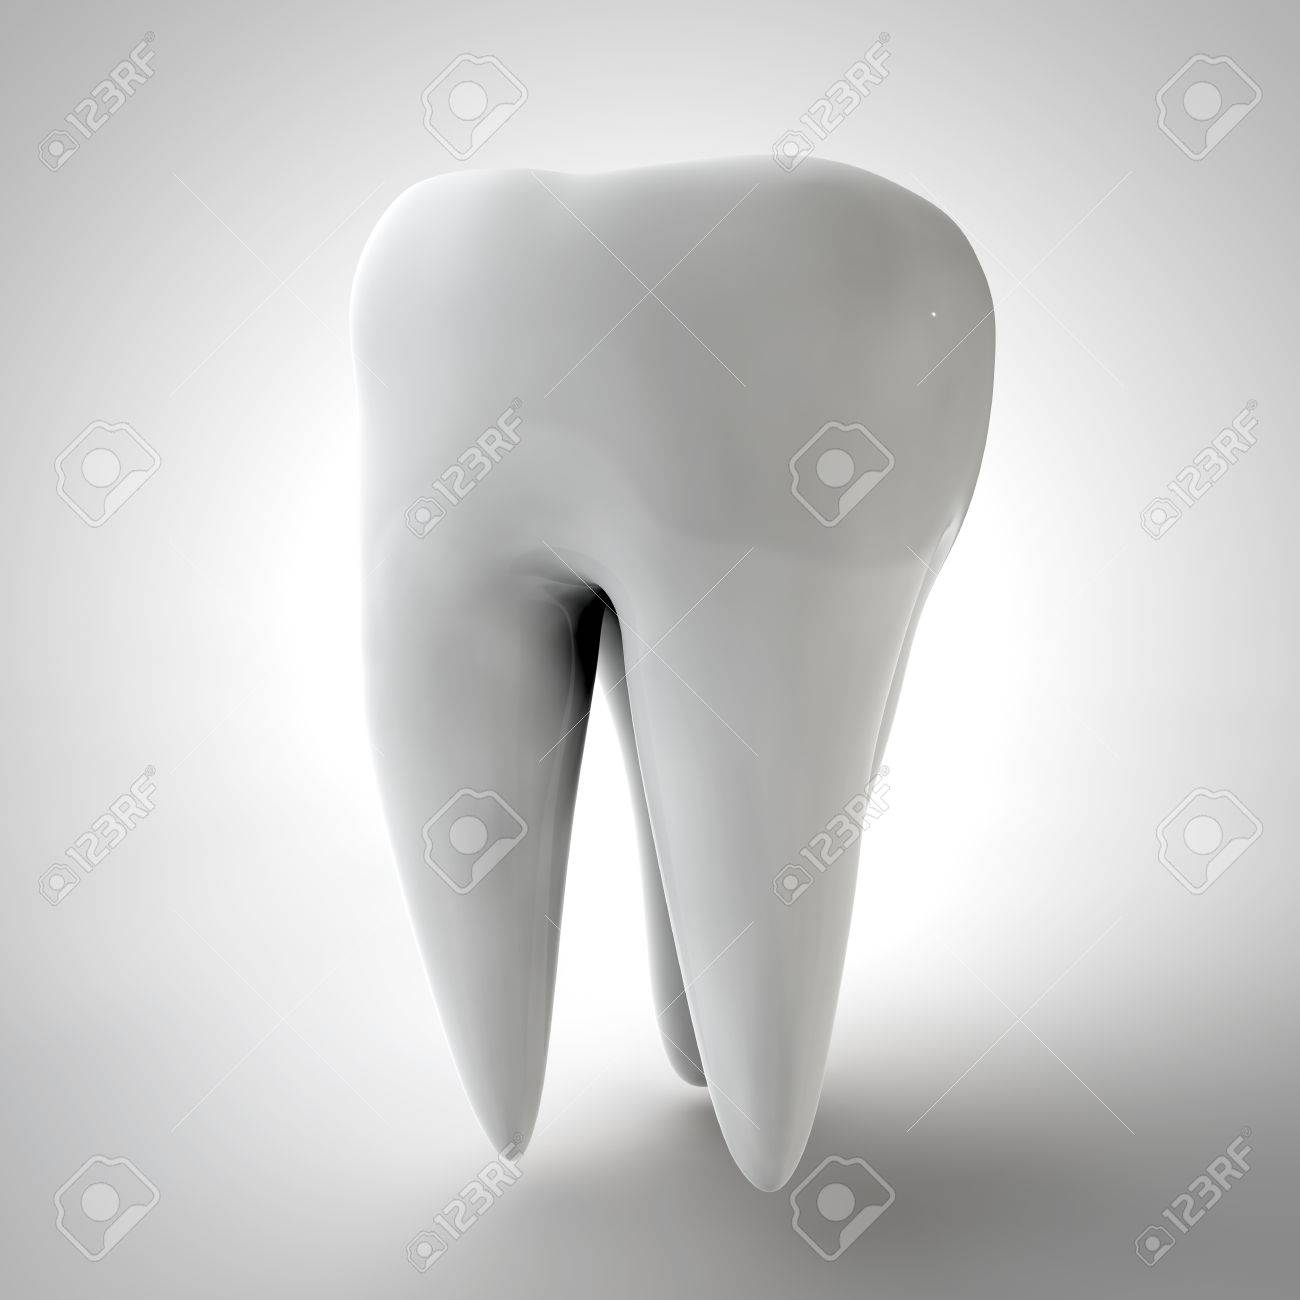 Human tooth 3D render Stock Photo - 72264101